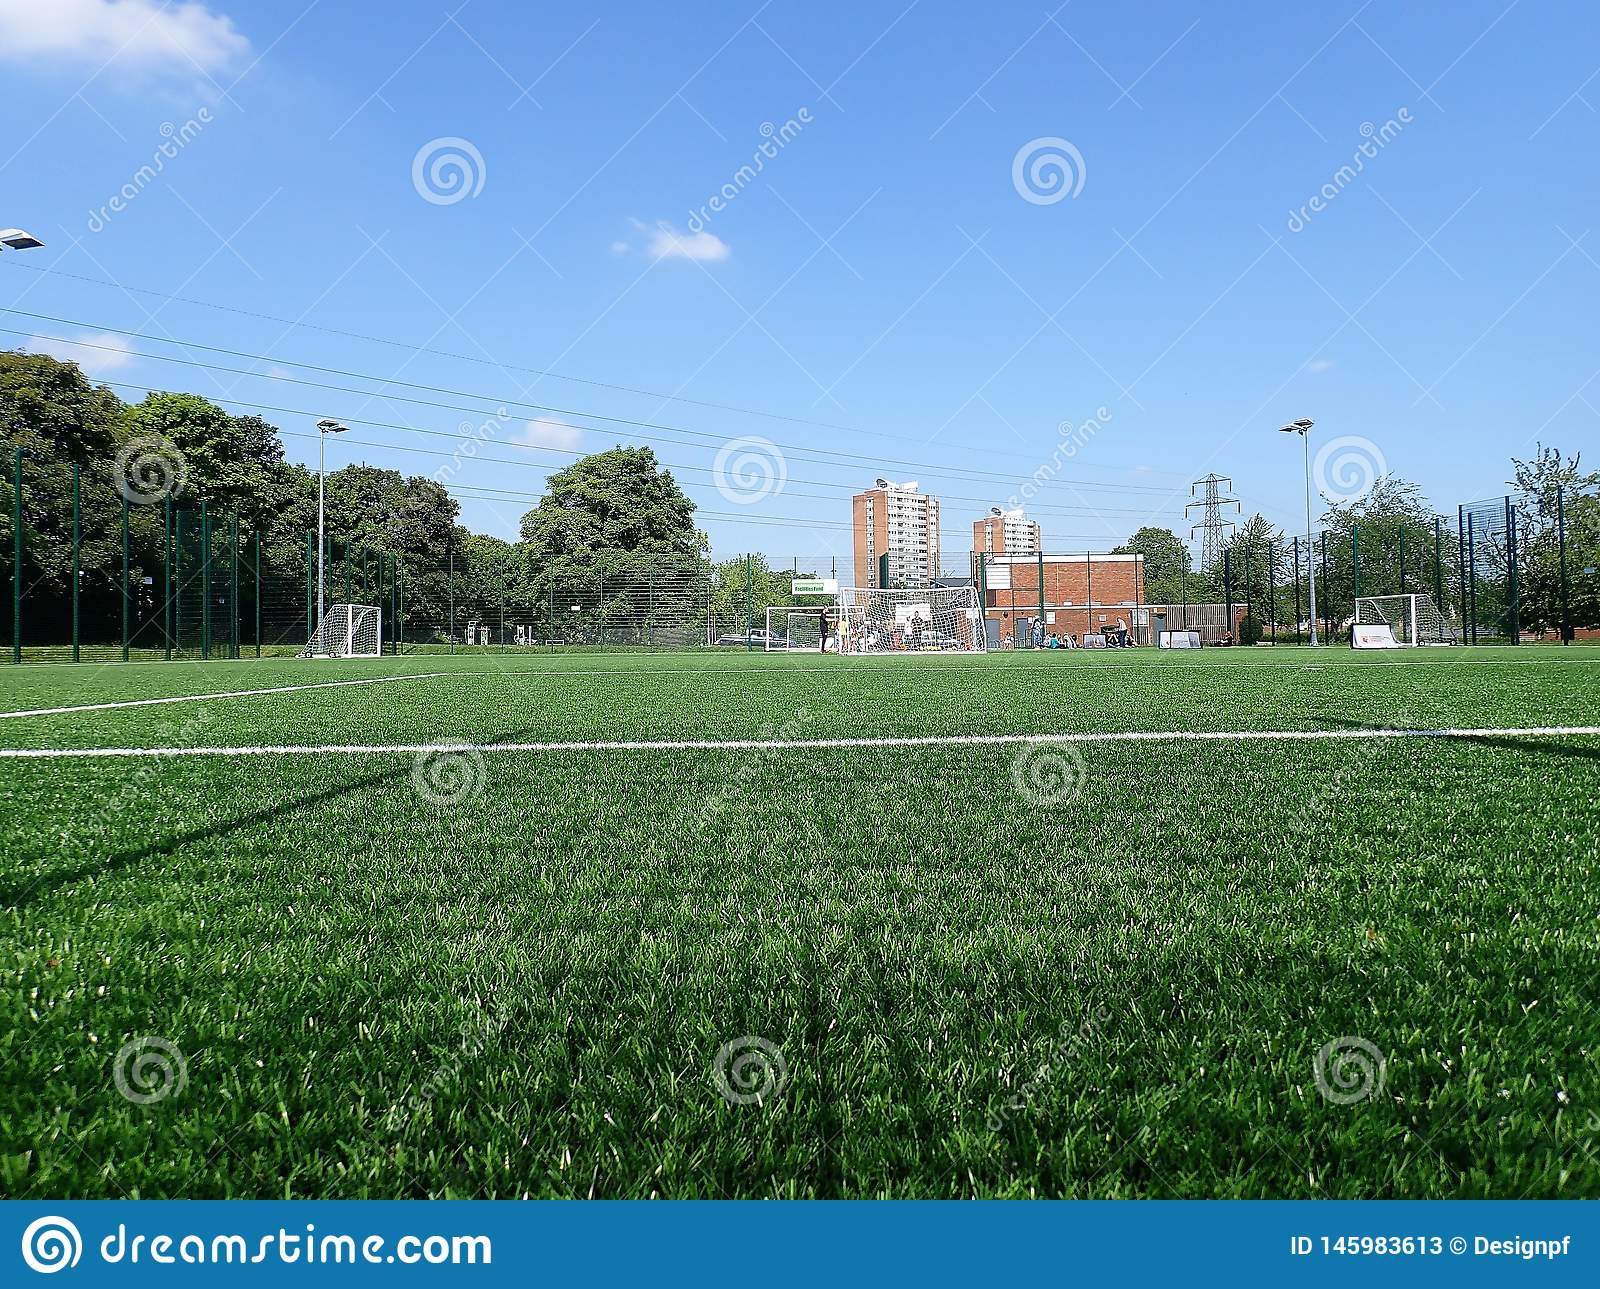 3G artificial grass pitch, Meriden Community Centre, Watford